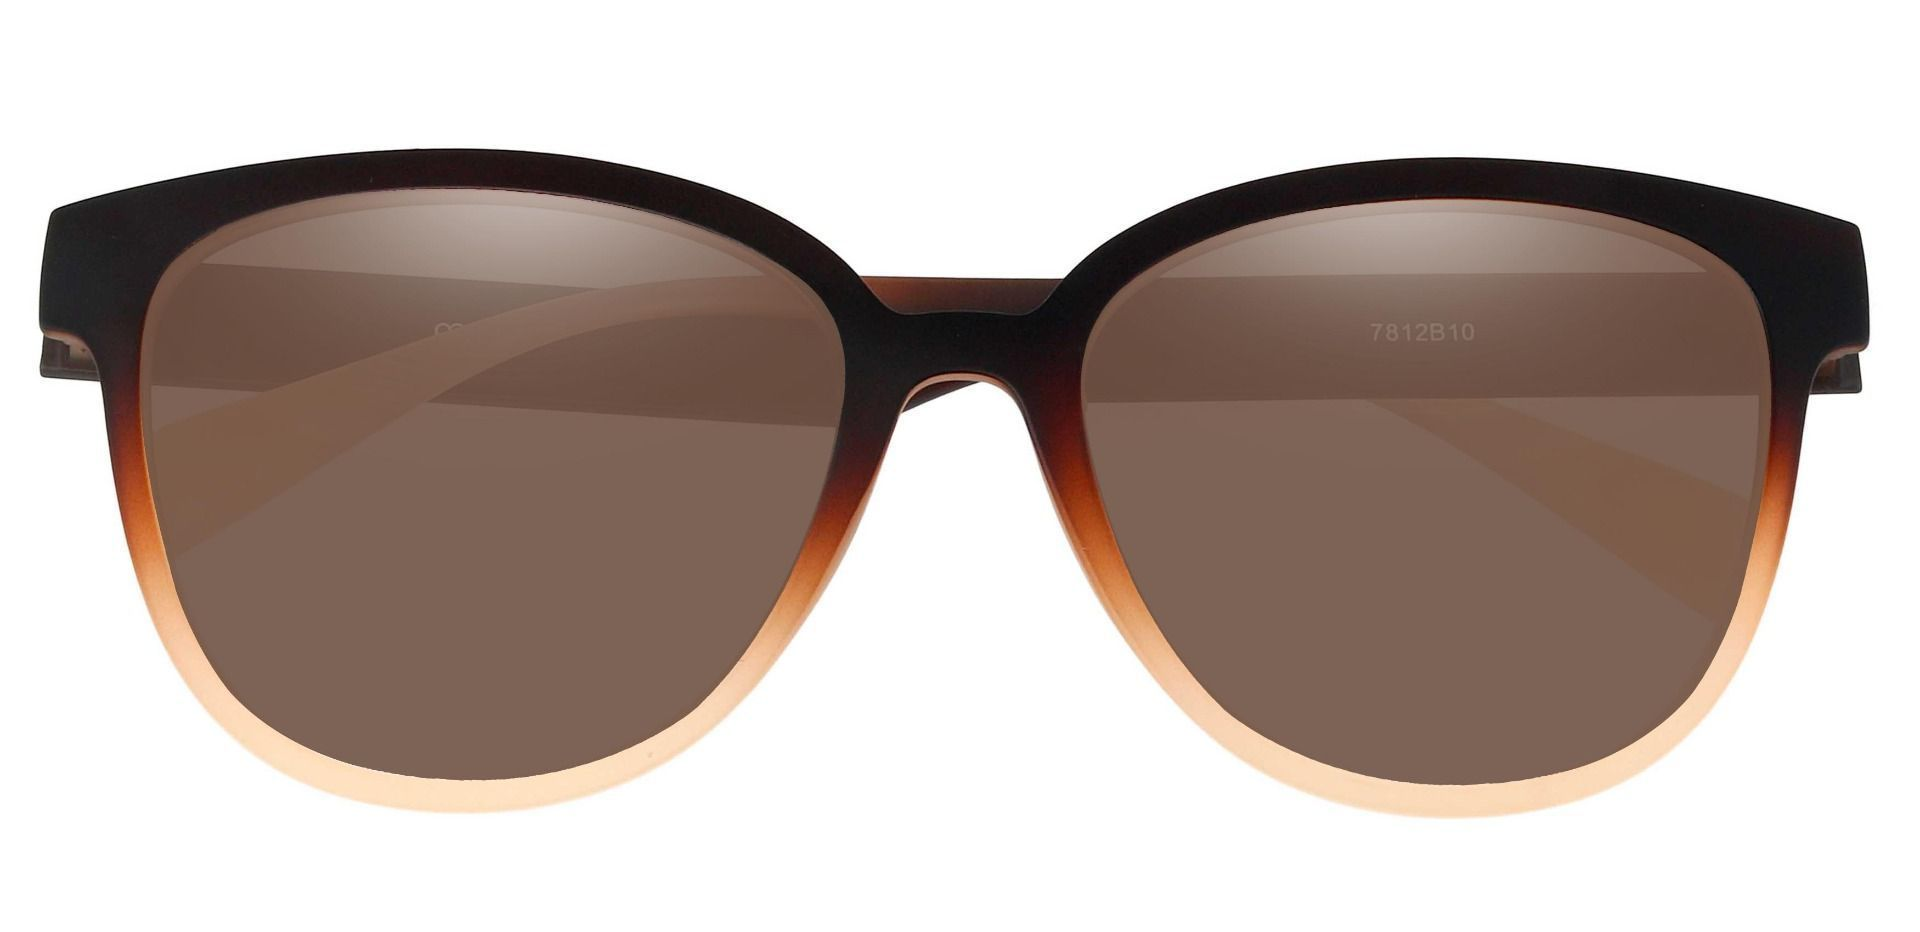 Newport Oval Lined Bifocal Sunglasses - Brown Frame With Brown Lenses